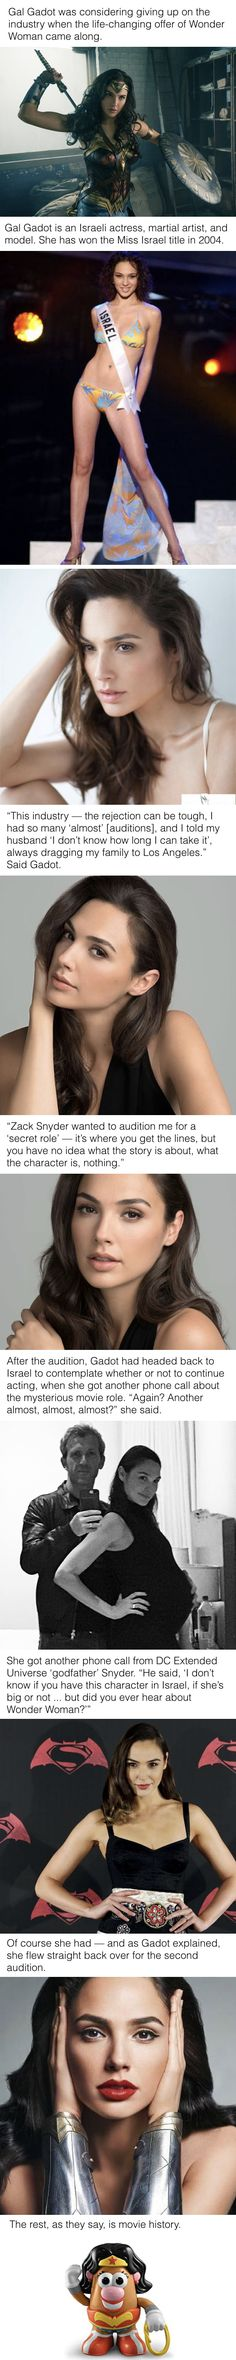 Gadot was considering giving up on acting when the life-changing offer came along. Gal Gadot was considering giving up on acting when the life-changing offer came along.Gal Gadot was considering giving up on acting when the life-changing offer came along. Beautiful Celebrities, Beautiful Women, Gal Gardot, Super Heroine, Gal Gadot Wonder Woman, Woman Crush, Role Models, Movie Stars, Actors & Actresses